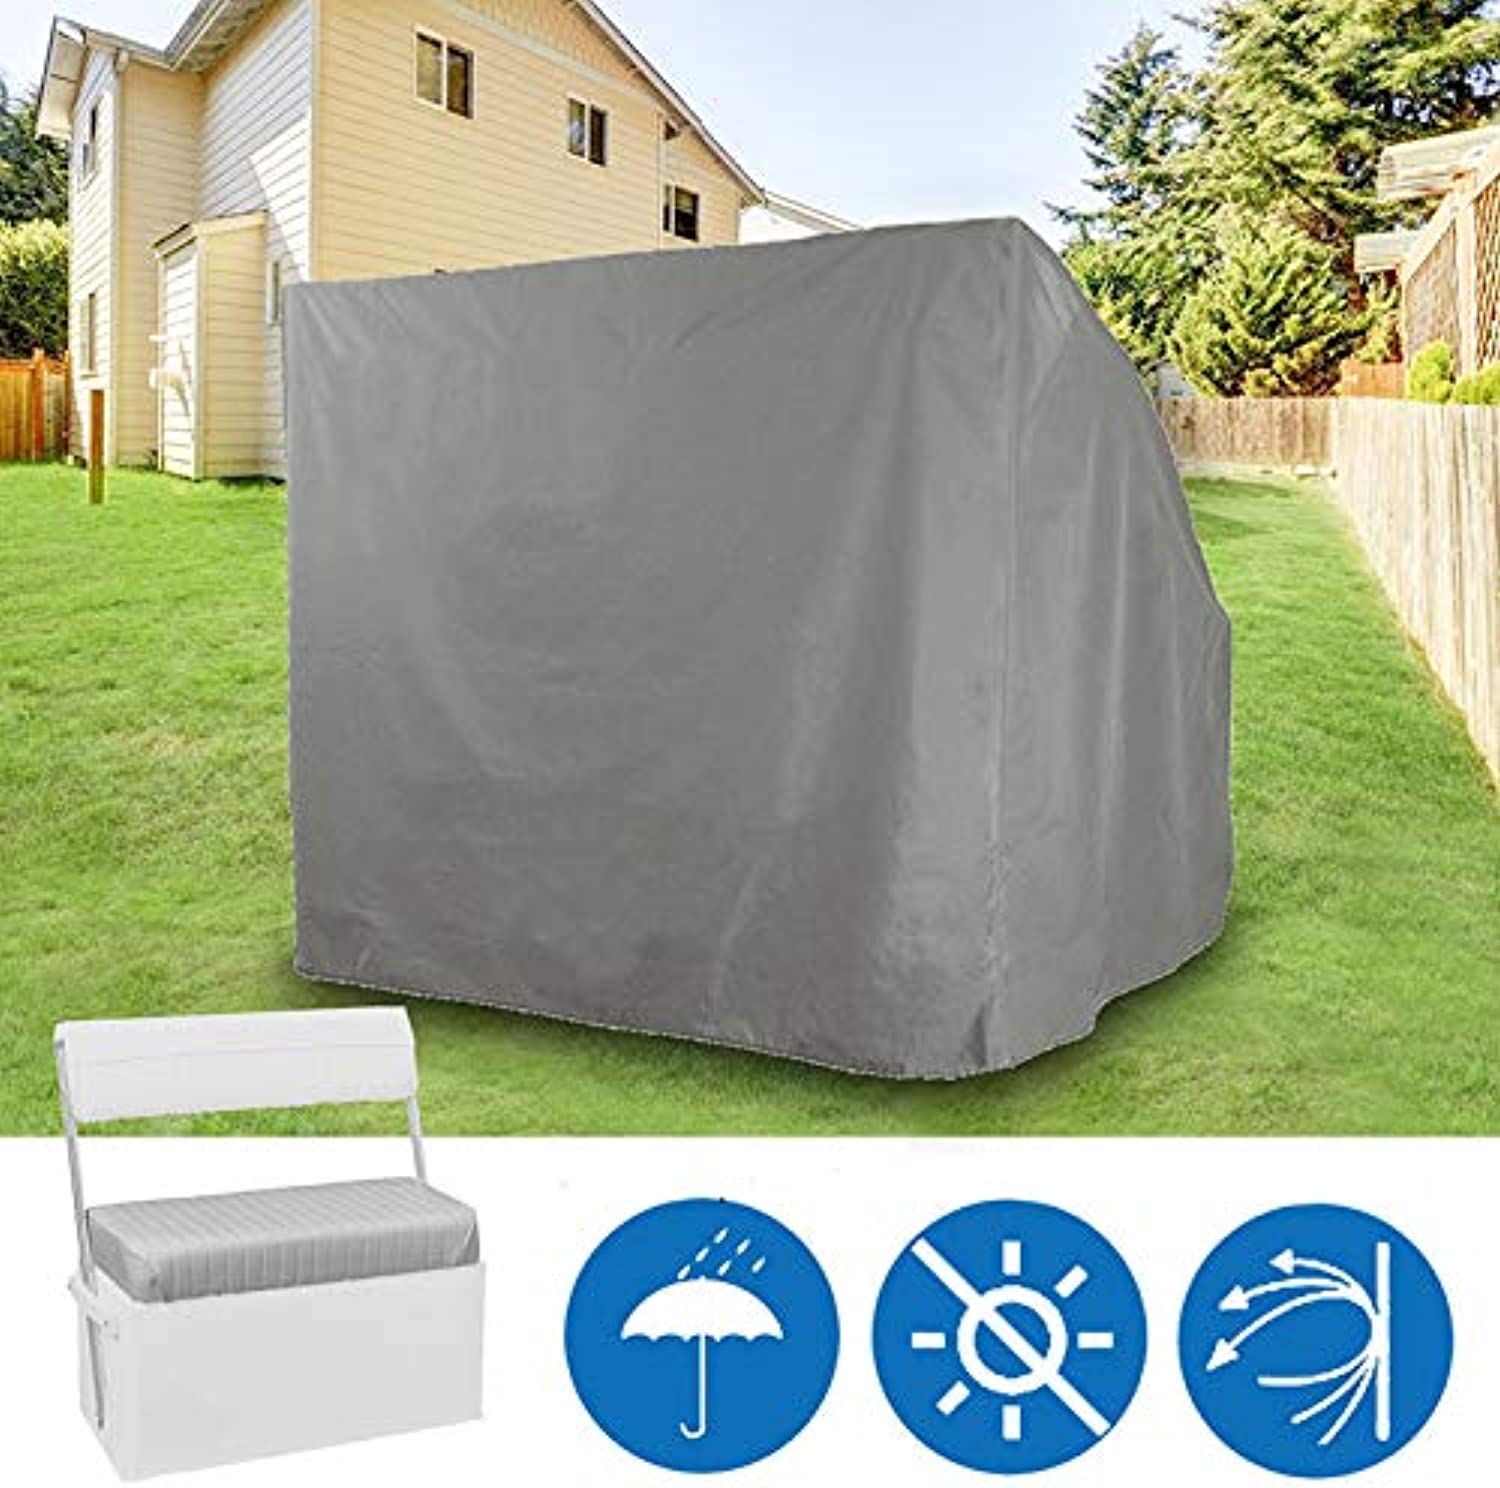 ShopSquare64 92 x 51 x 92cm Polyester Garden Furniture Waterproof Dustproof Cover Cap Swing Back Seat Cover